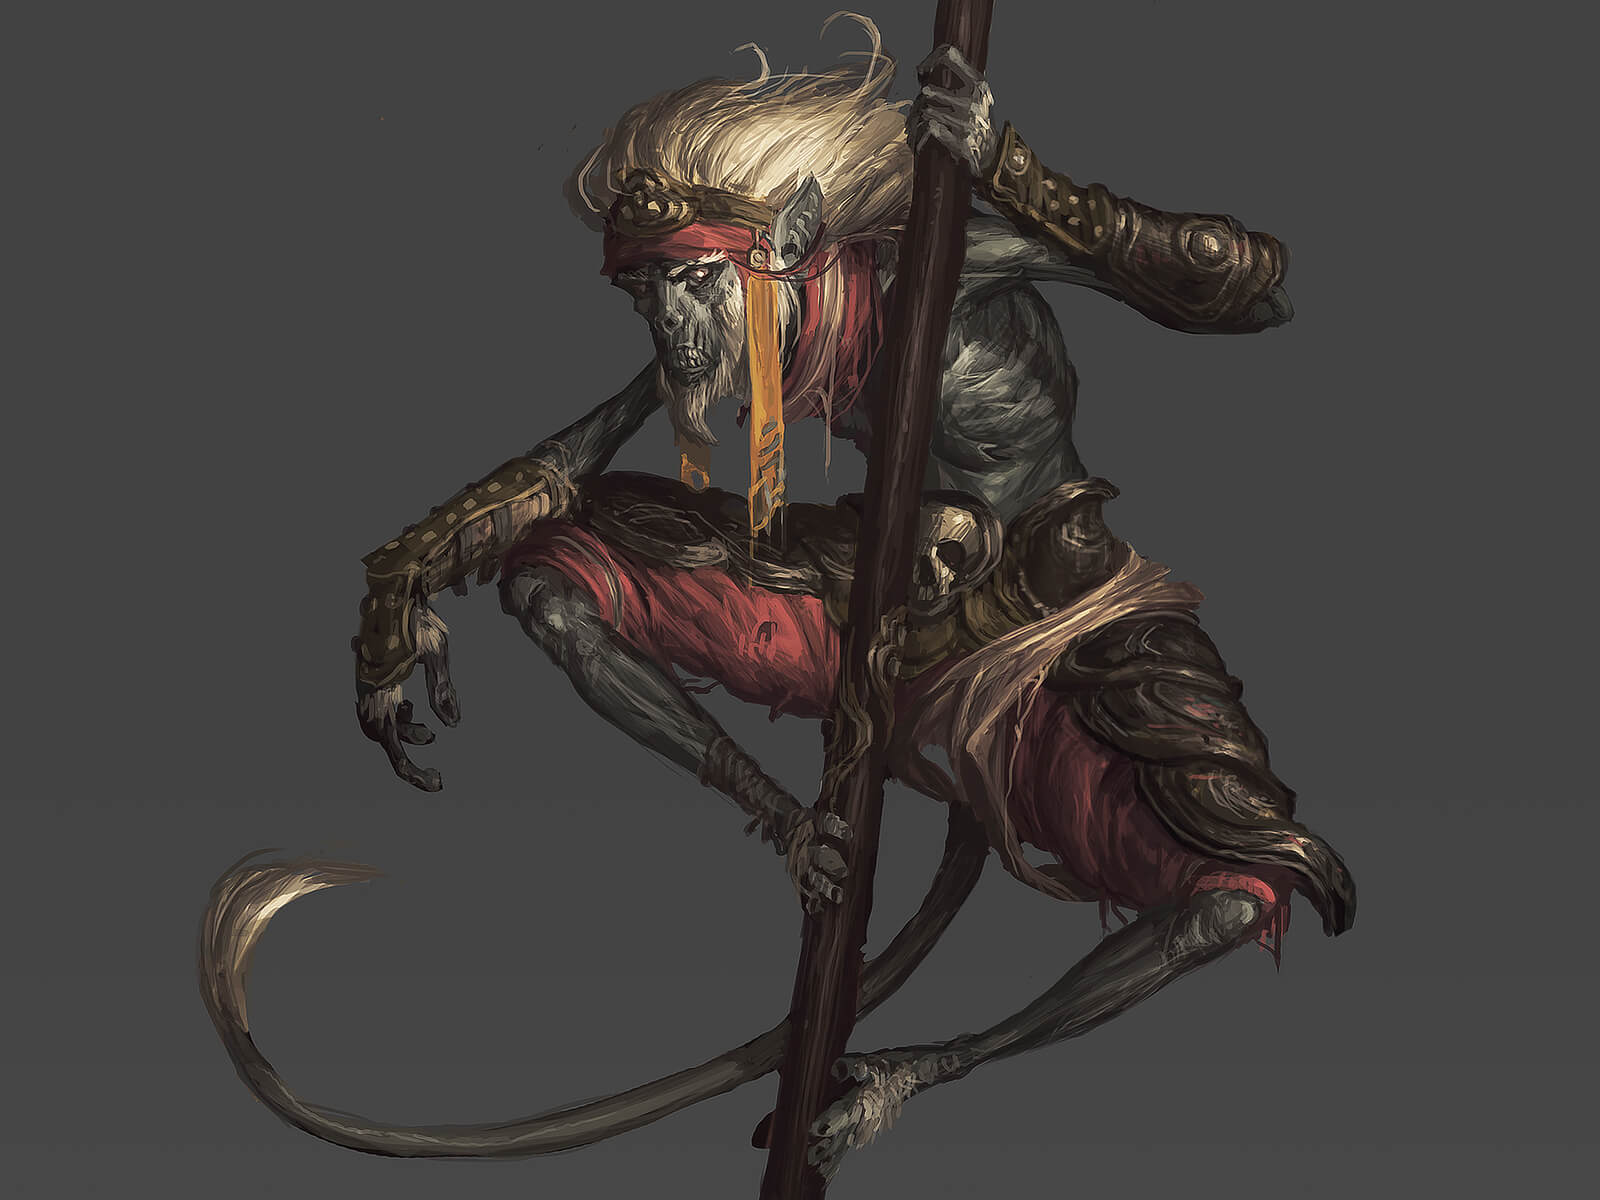 A desiccated or undead monkey with white hair balances on a tall wooden staff while dressed in ancient warrior garb.